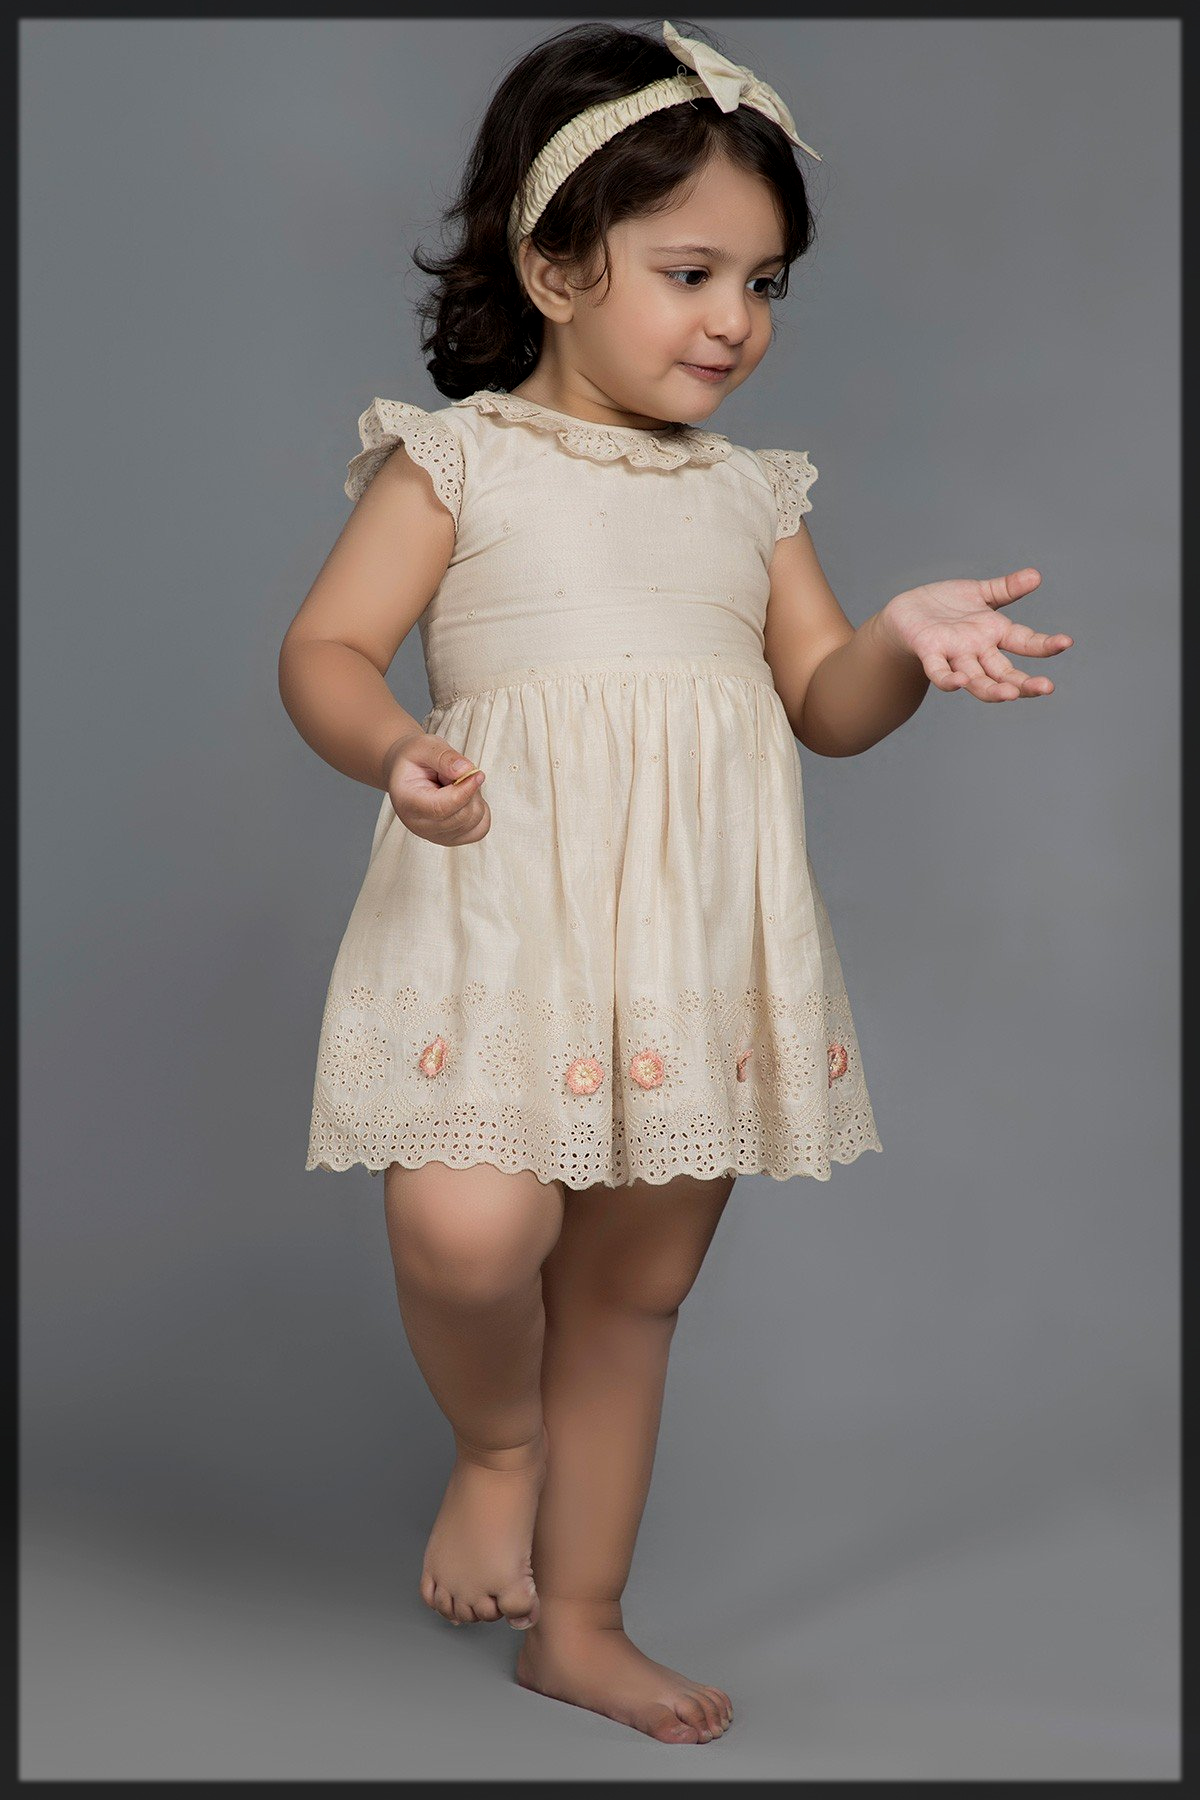 cotton frock for young girls